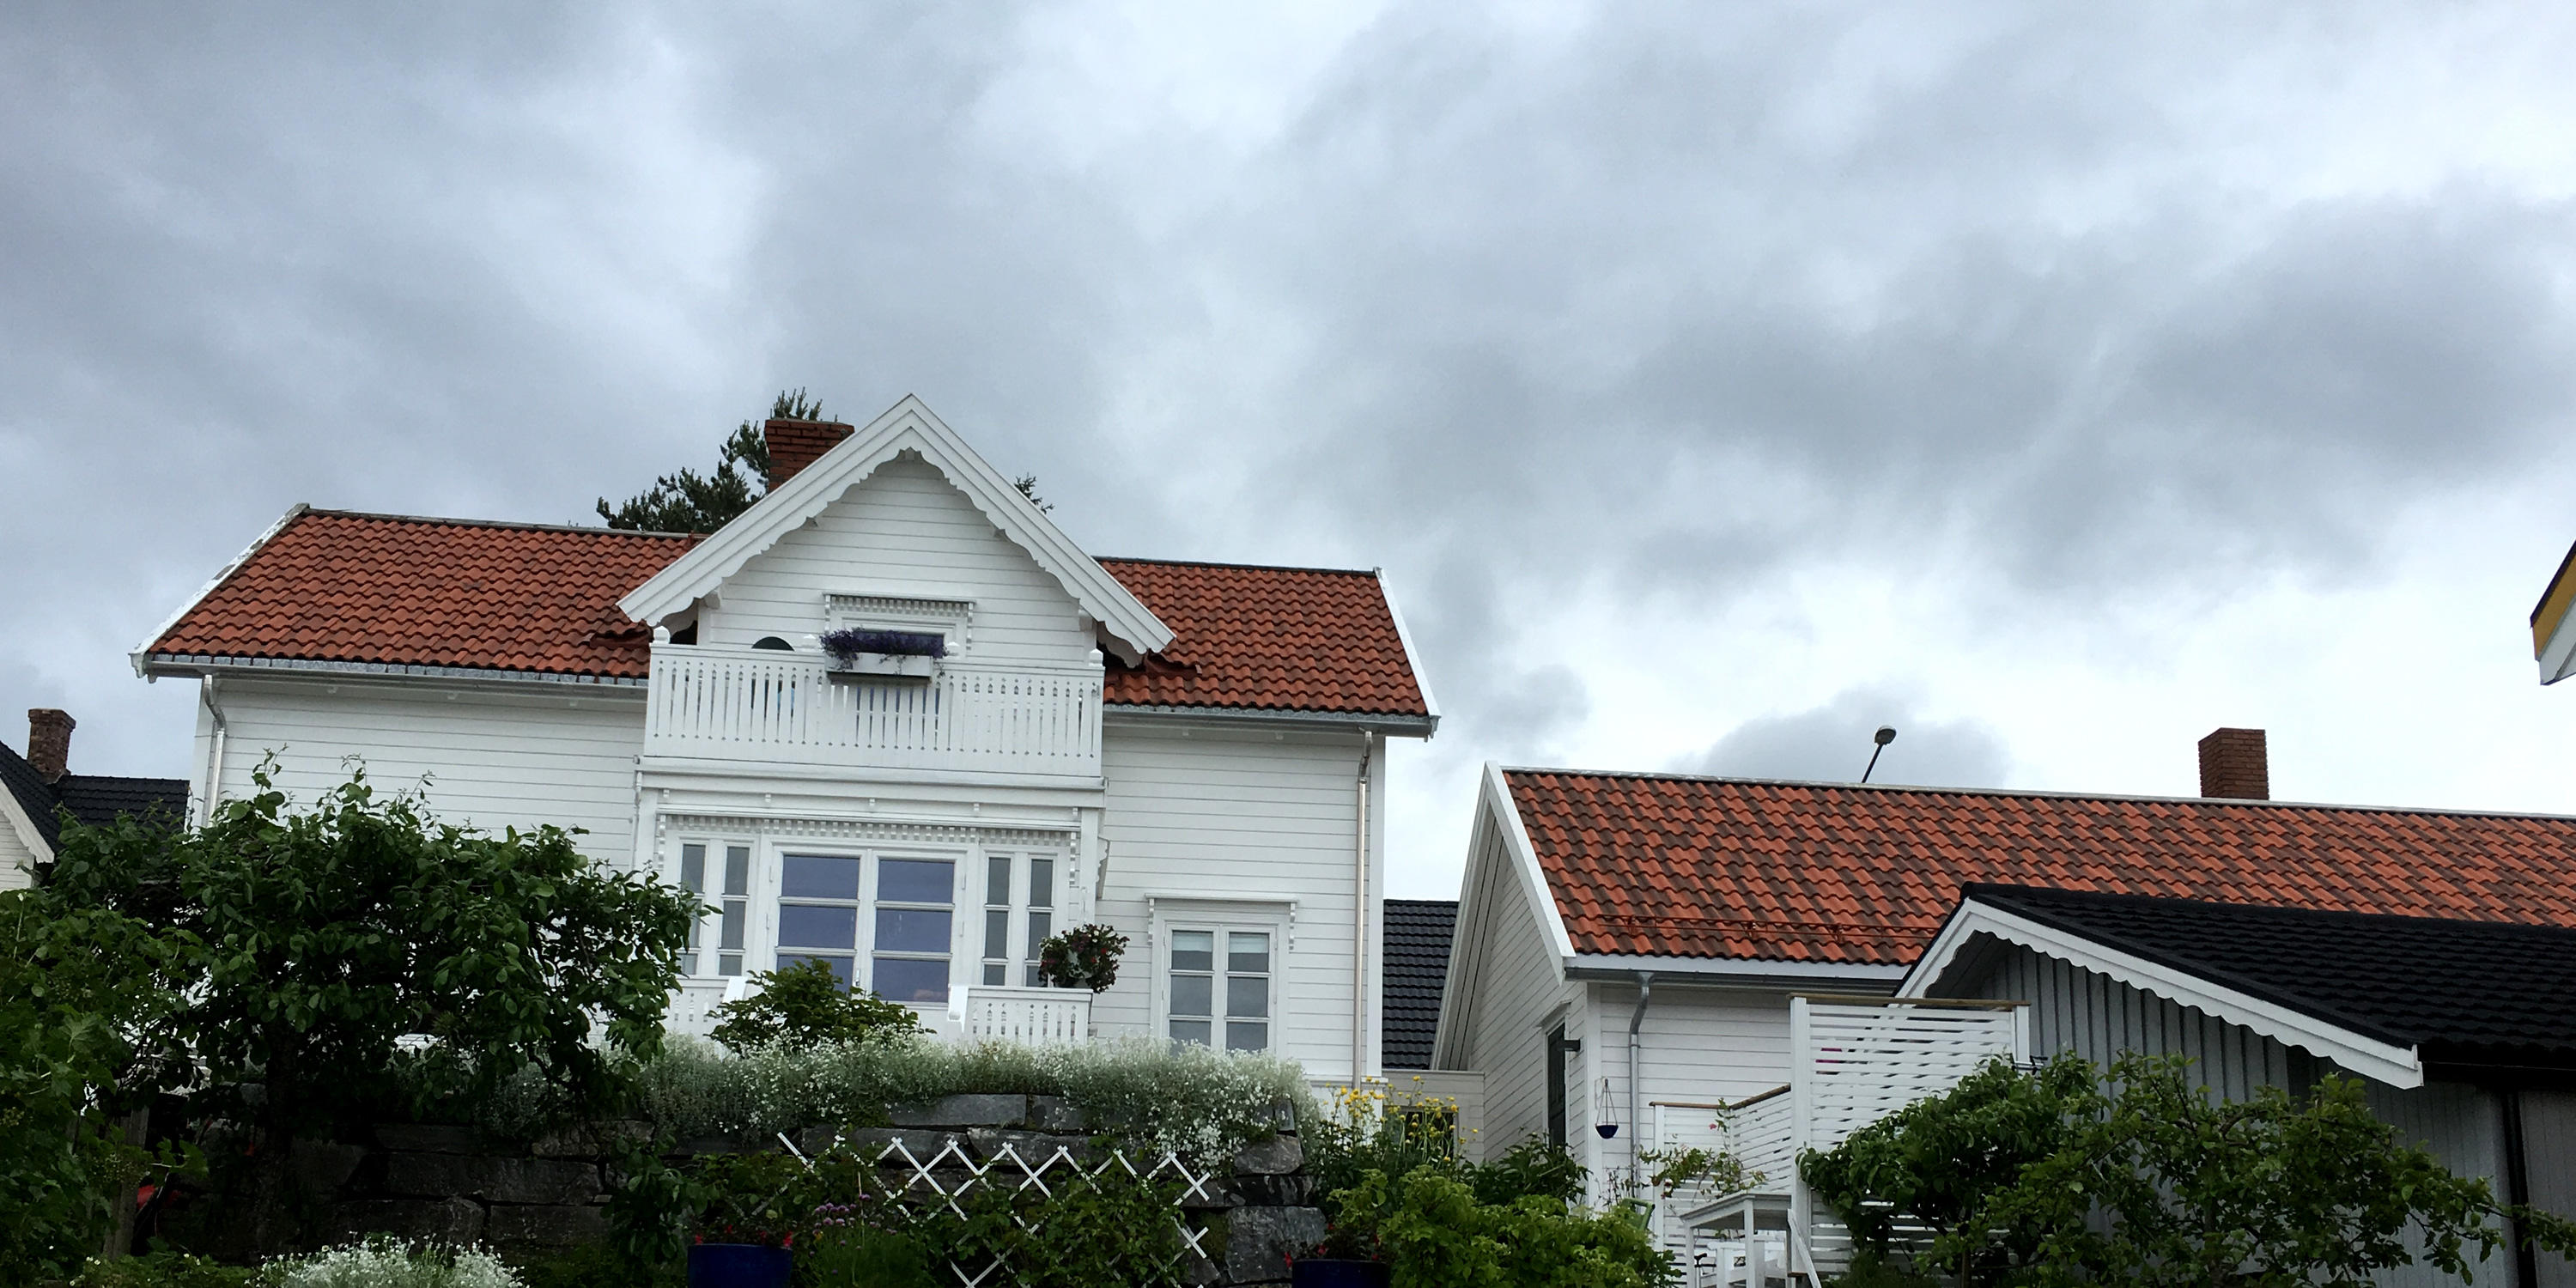 The childhood home of Nils Aas. Copyright: Visit Innherred